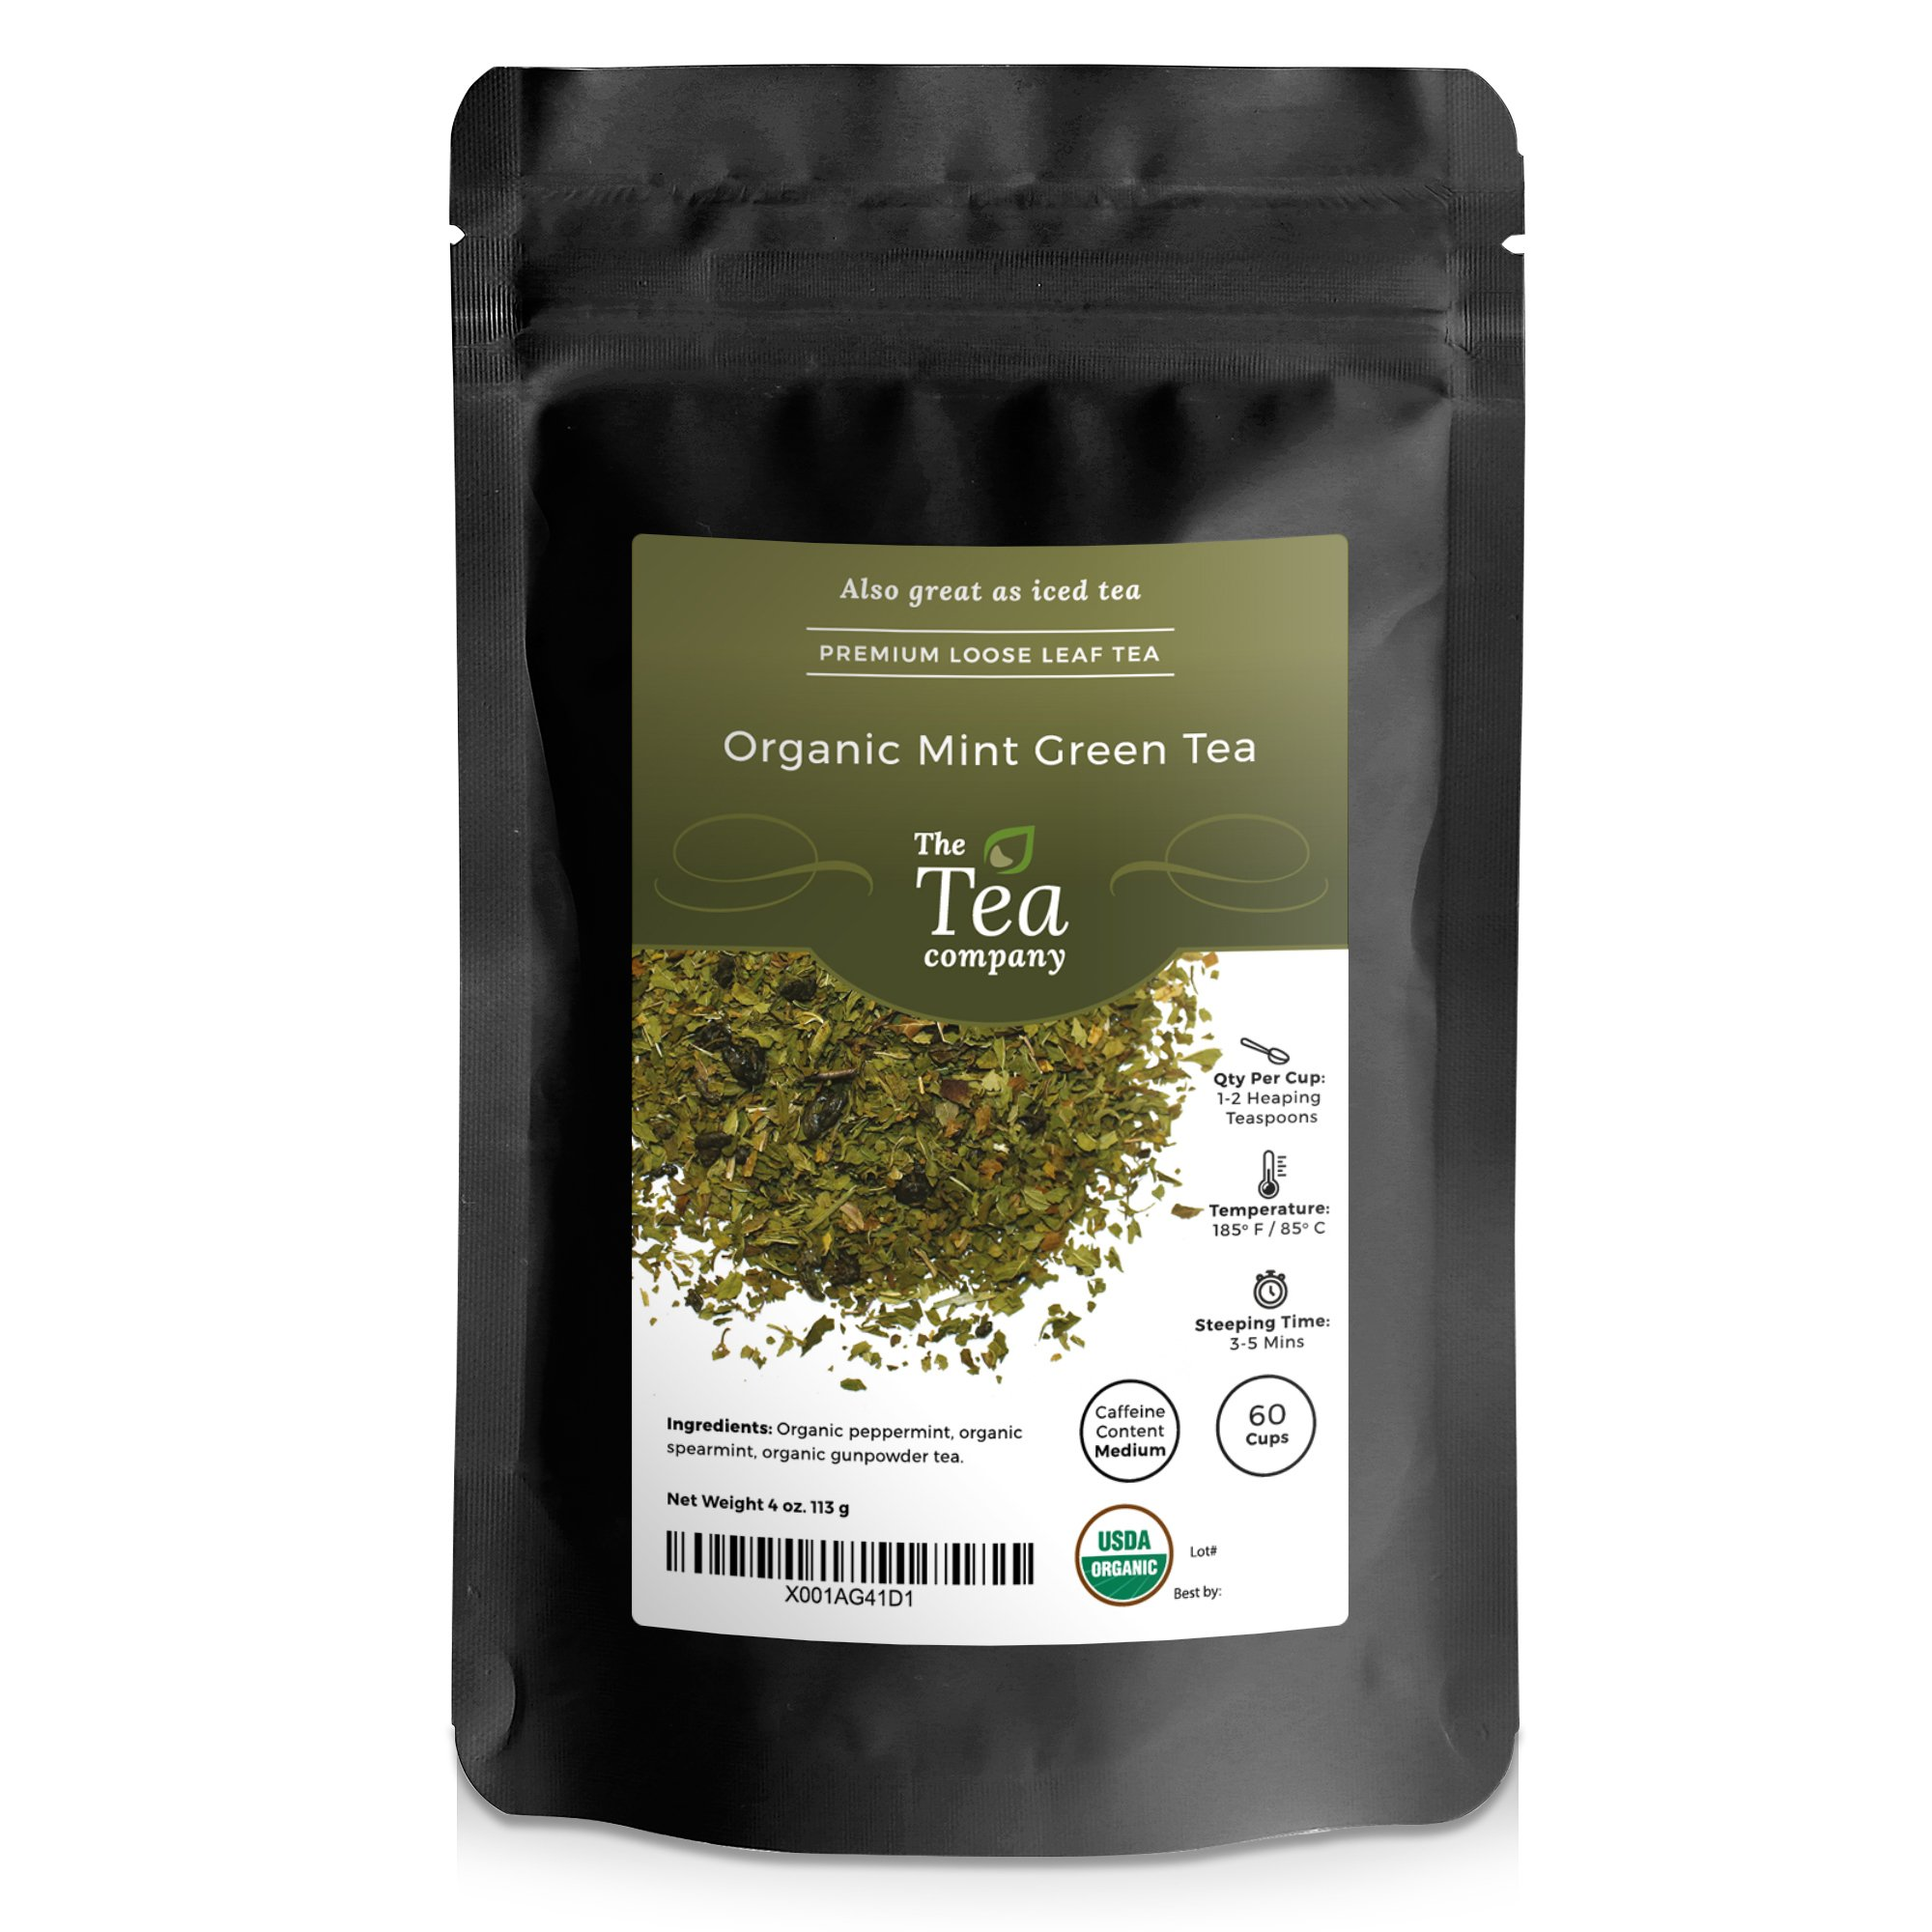 Organic Mint Green Tea Peppermint & Spearmint 60 cups Moroccan The Tea Company 4oz